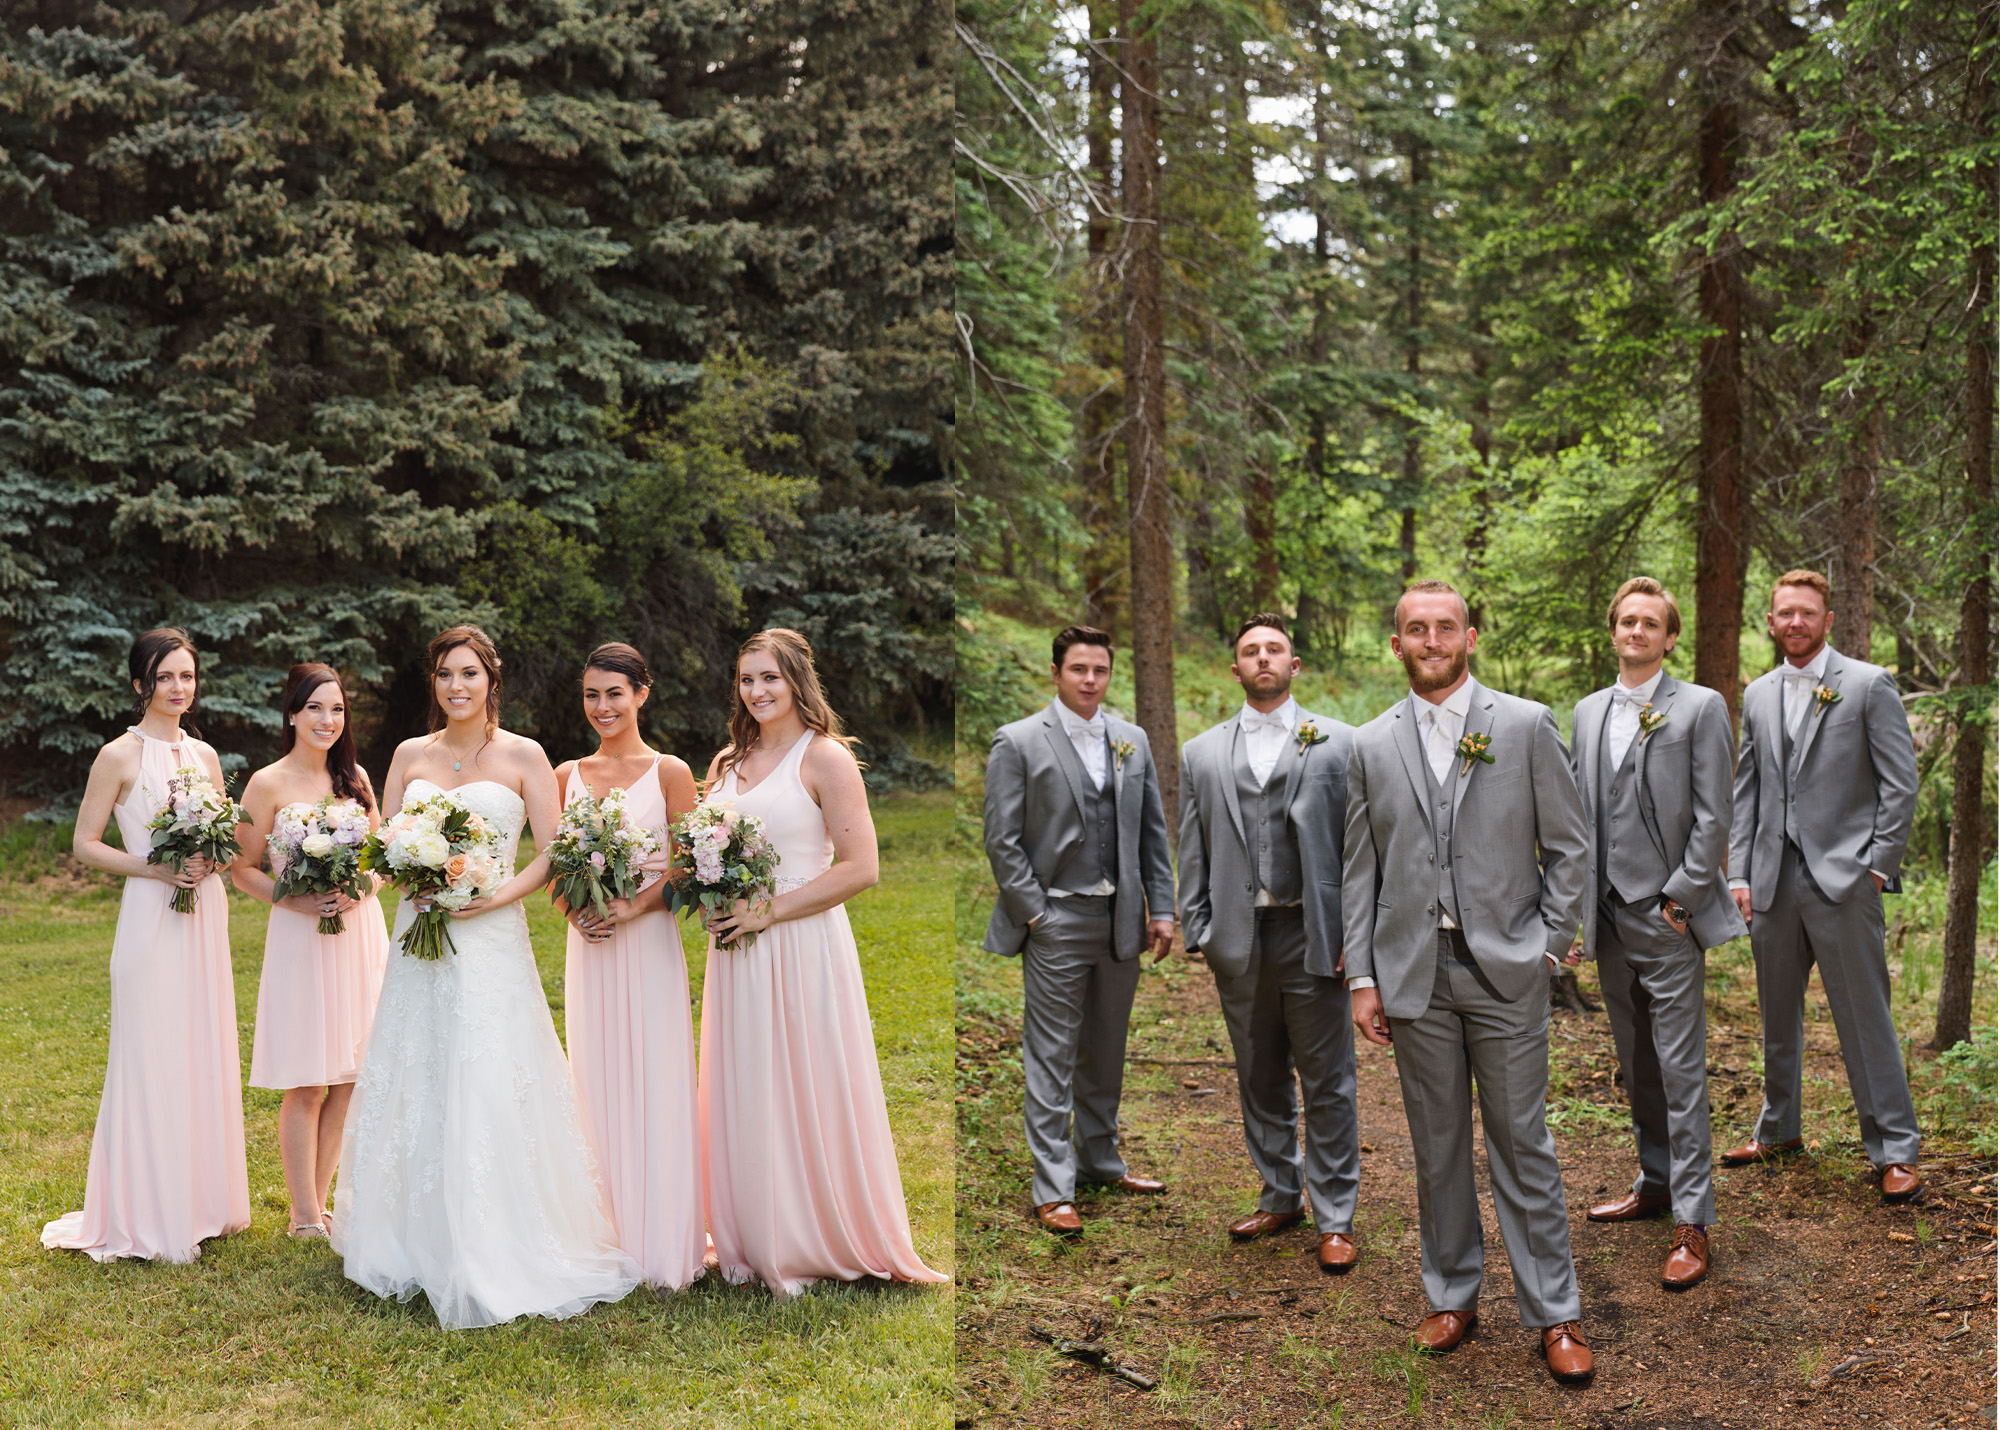 These images were captured at approximately the same time by one photographer assigned to the bride (left) and another for the groom (right). One photographer can manage to do both, but if things run the least bit behind schedule, the photographer will be rushed and the creativity in lining up the groups may show it.